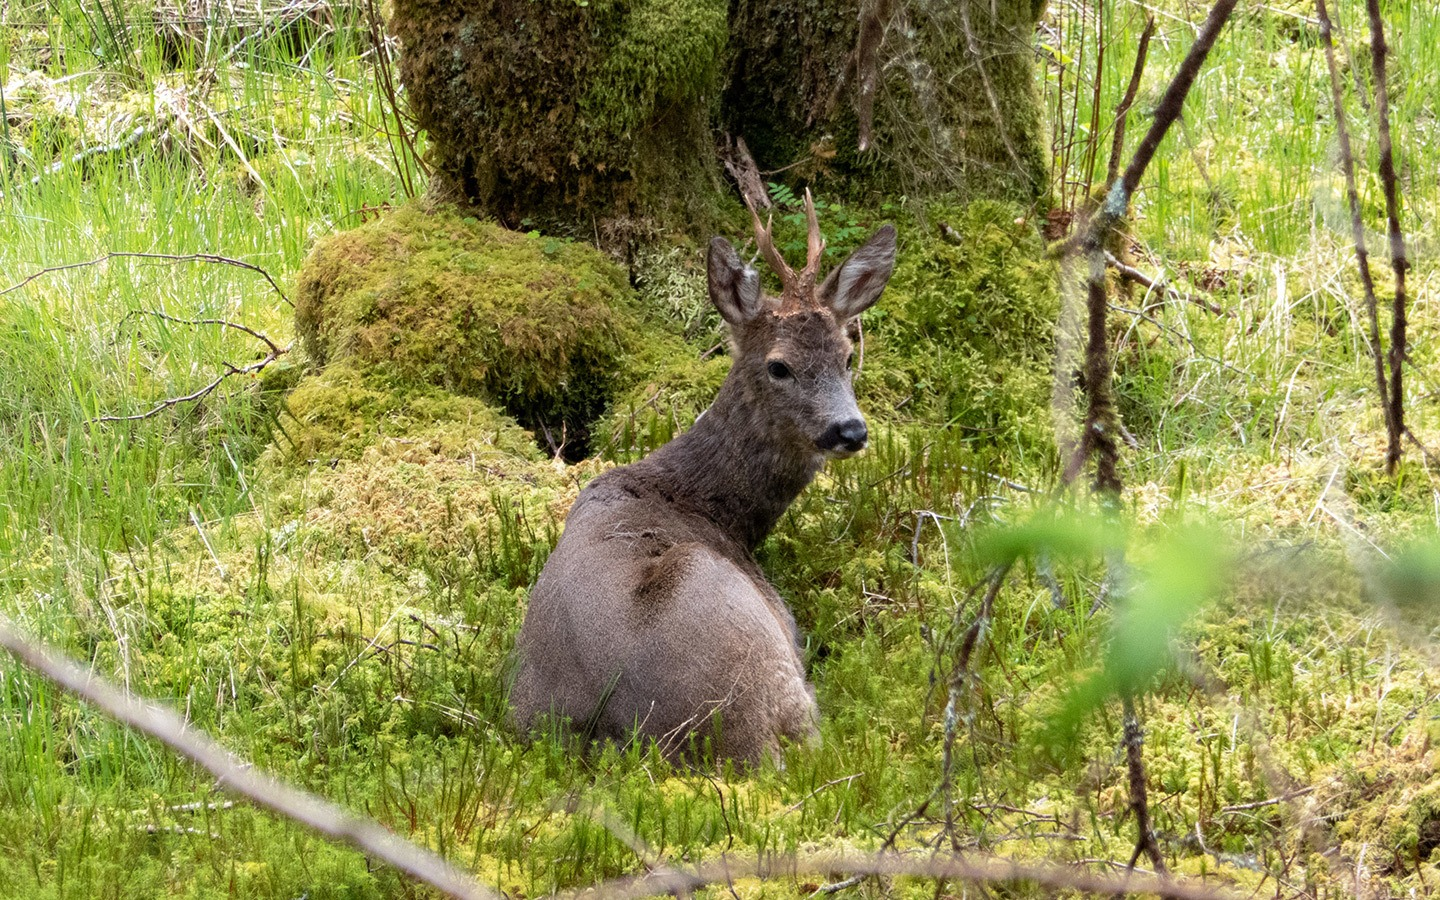 Deer in the woodland near Glencoe